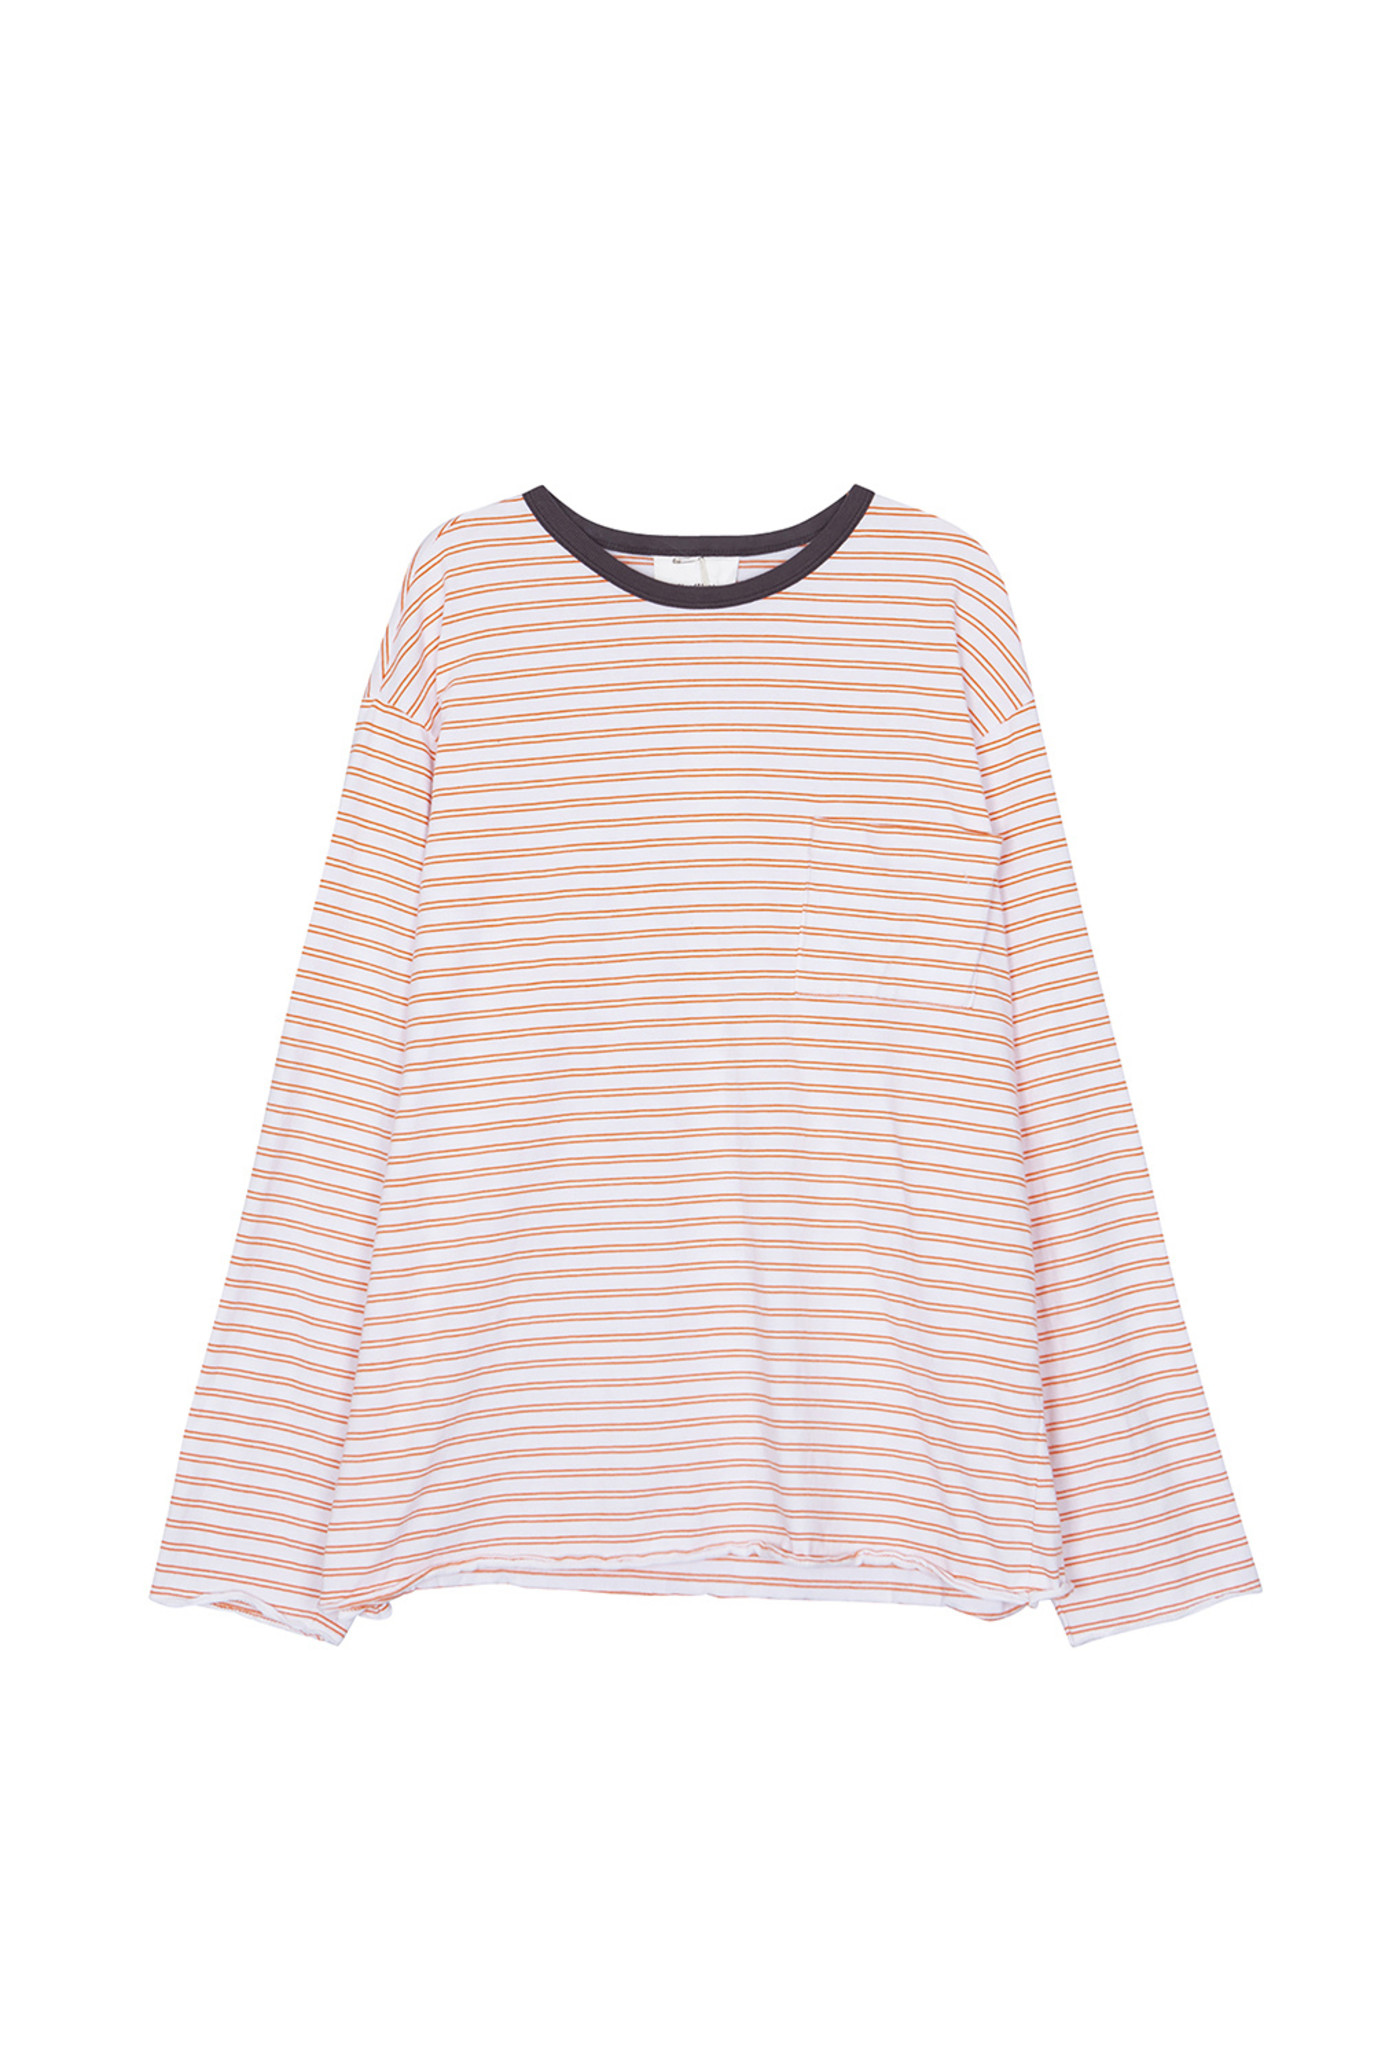 Thick stripe t-shirt orange white